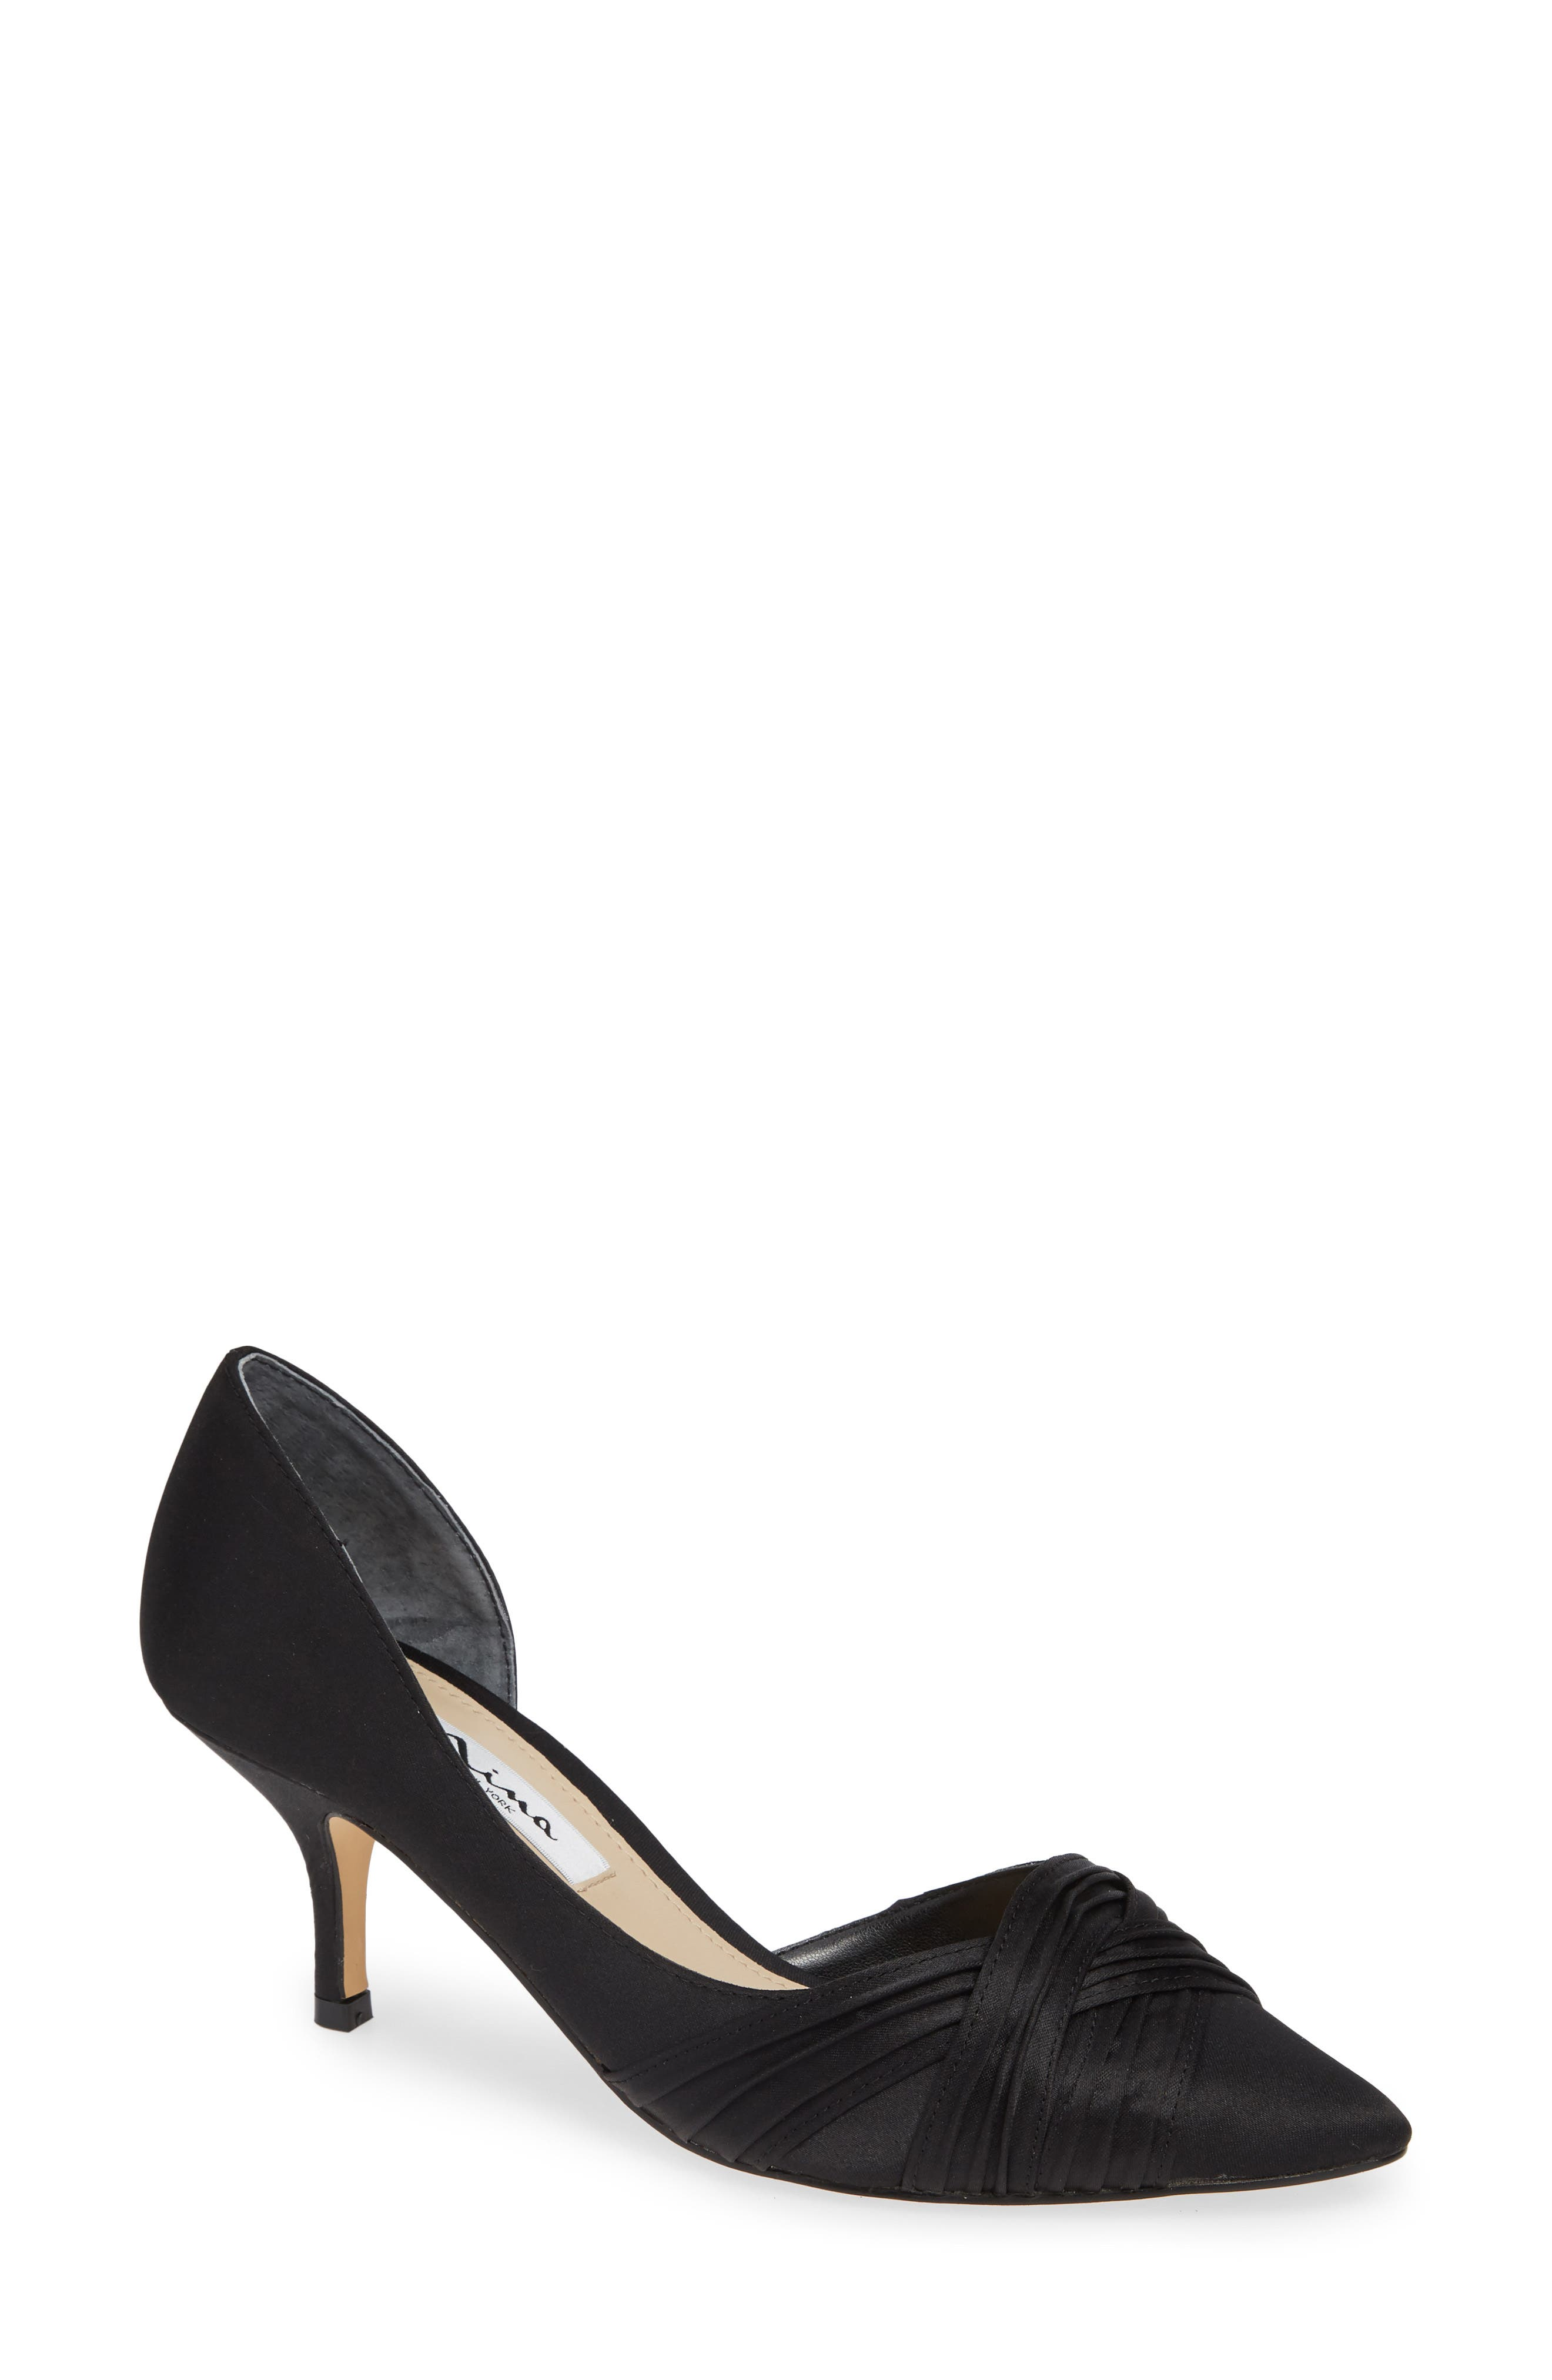 Blakely Half d'Orsay Pointy Toe Pump,                         Main,                         color, BLACK SATIN